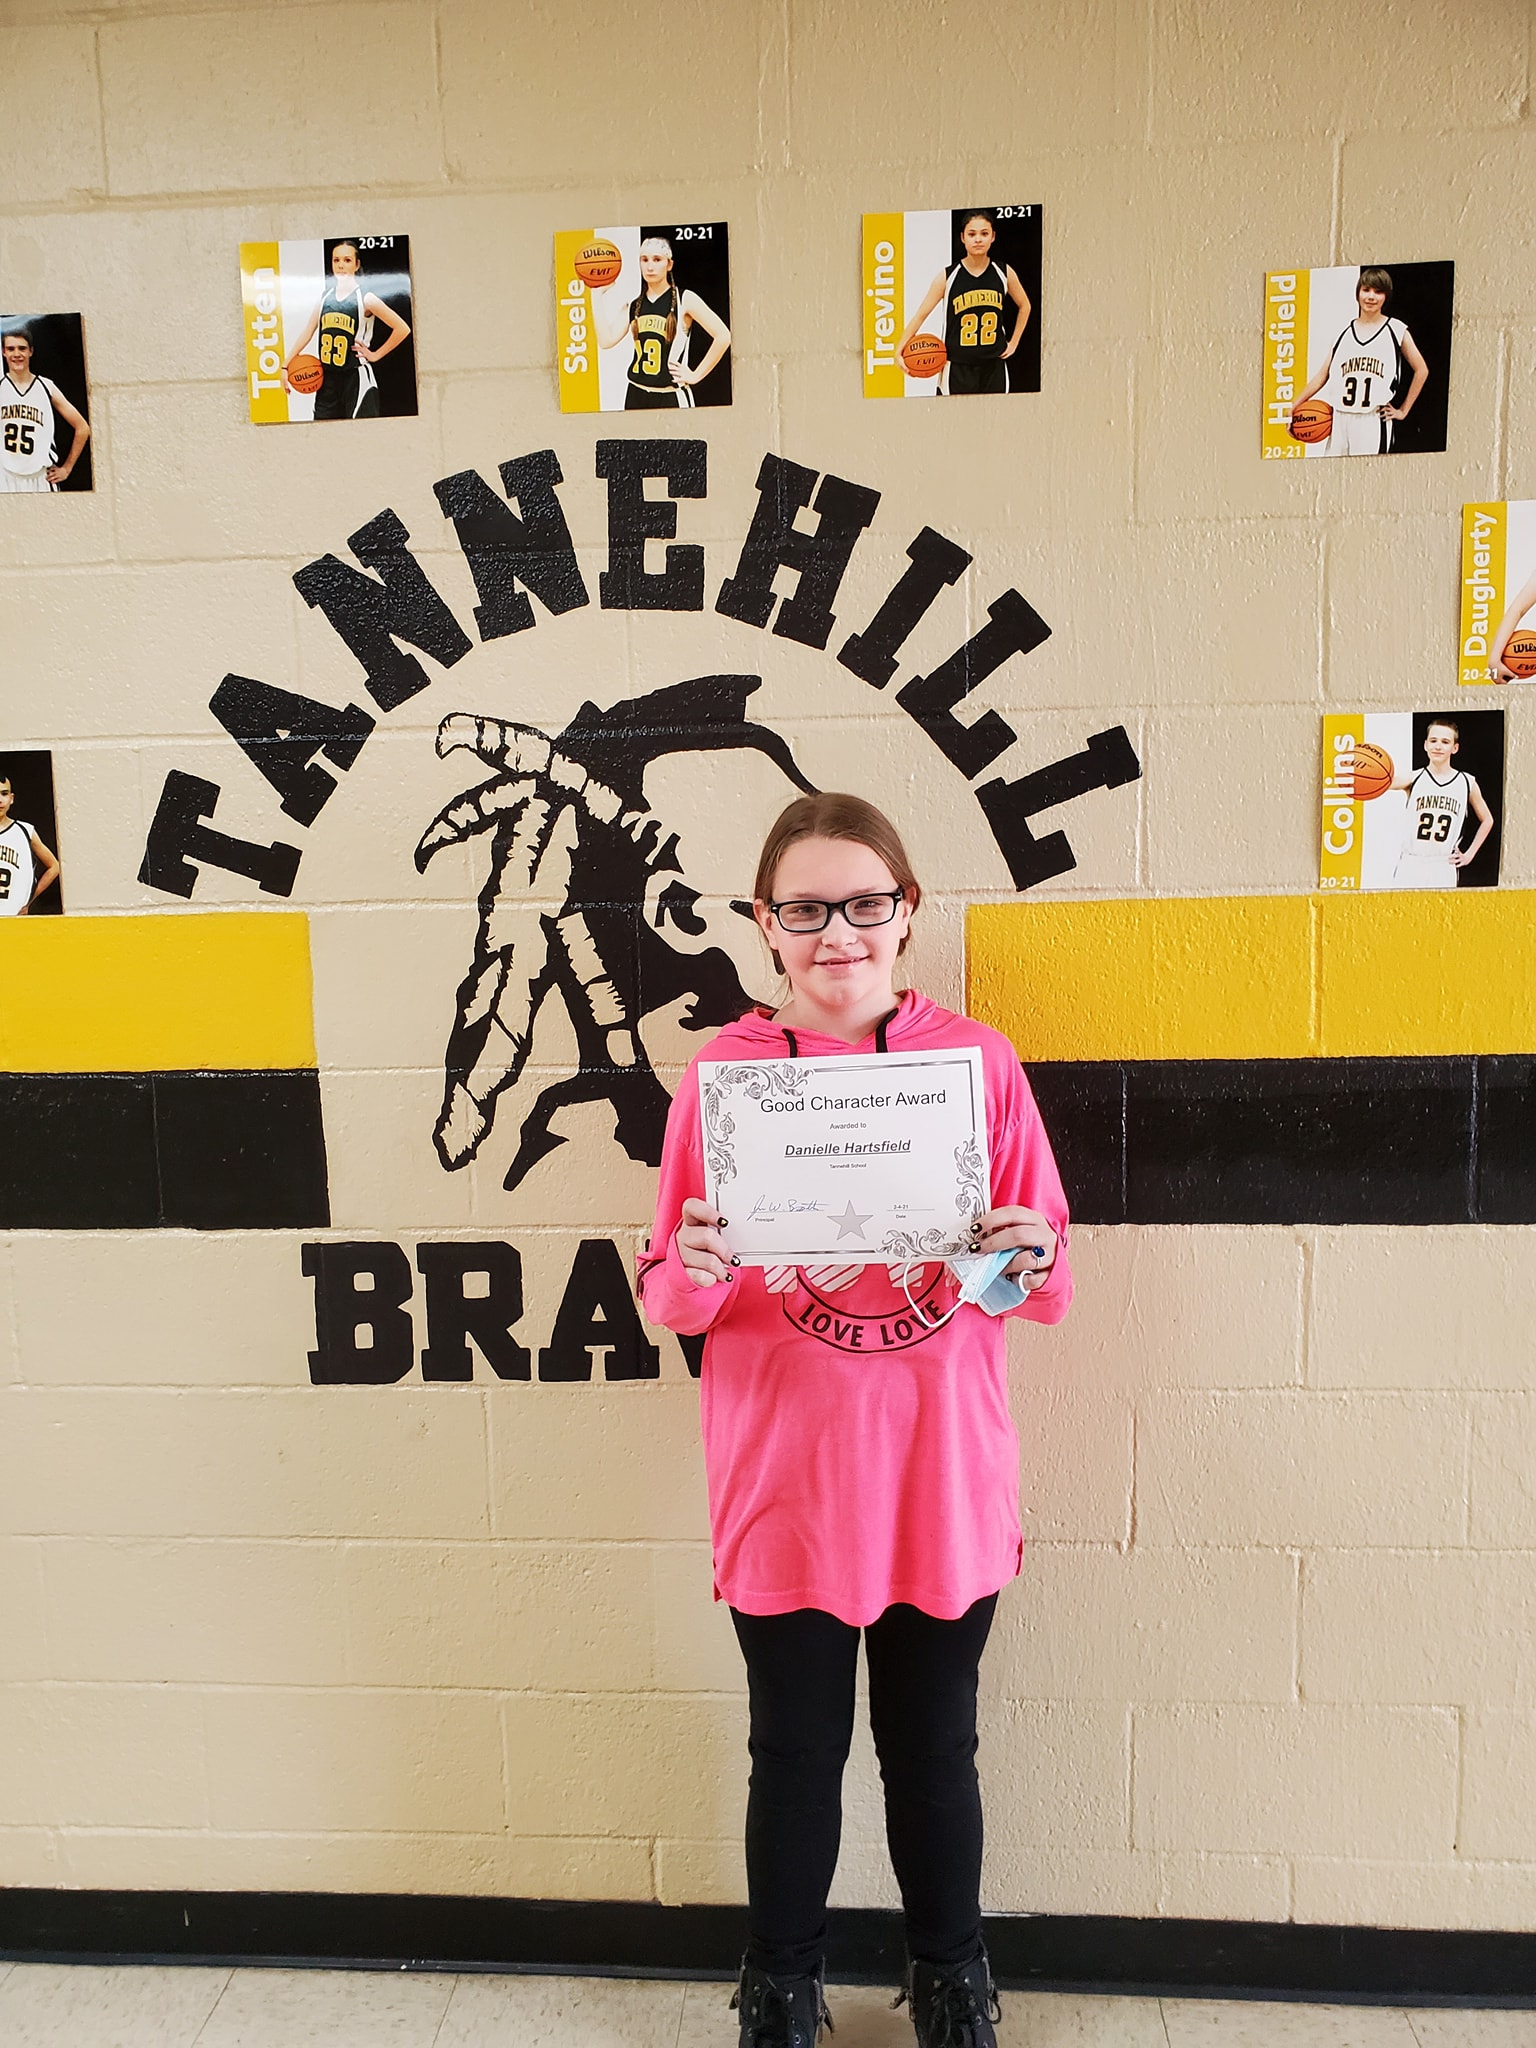 January Good Character of the Month: Danielle Hartsfield